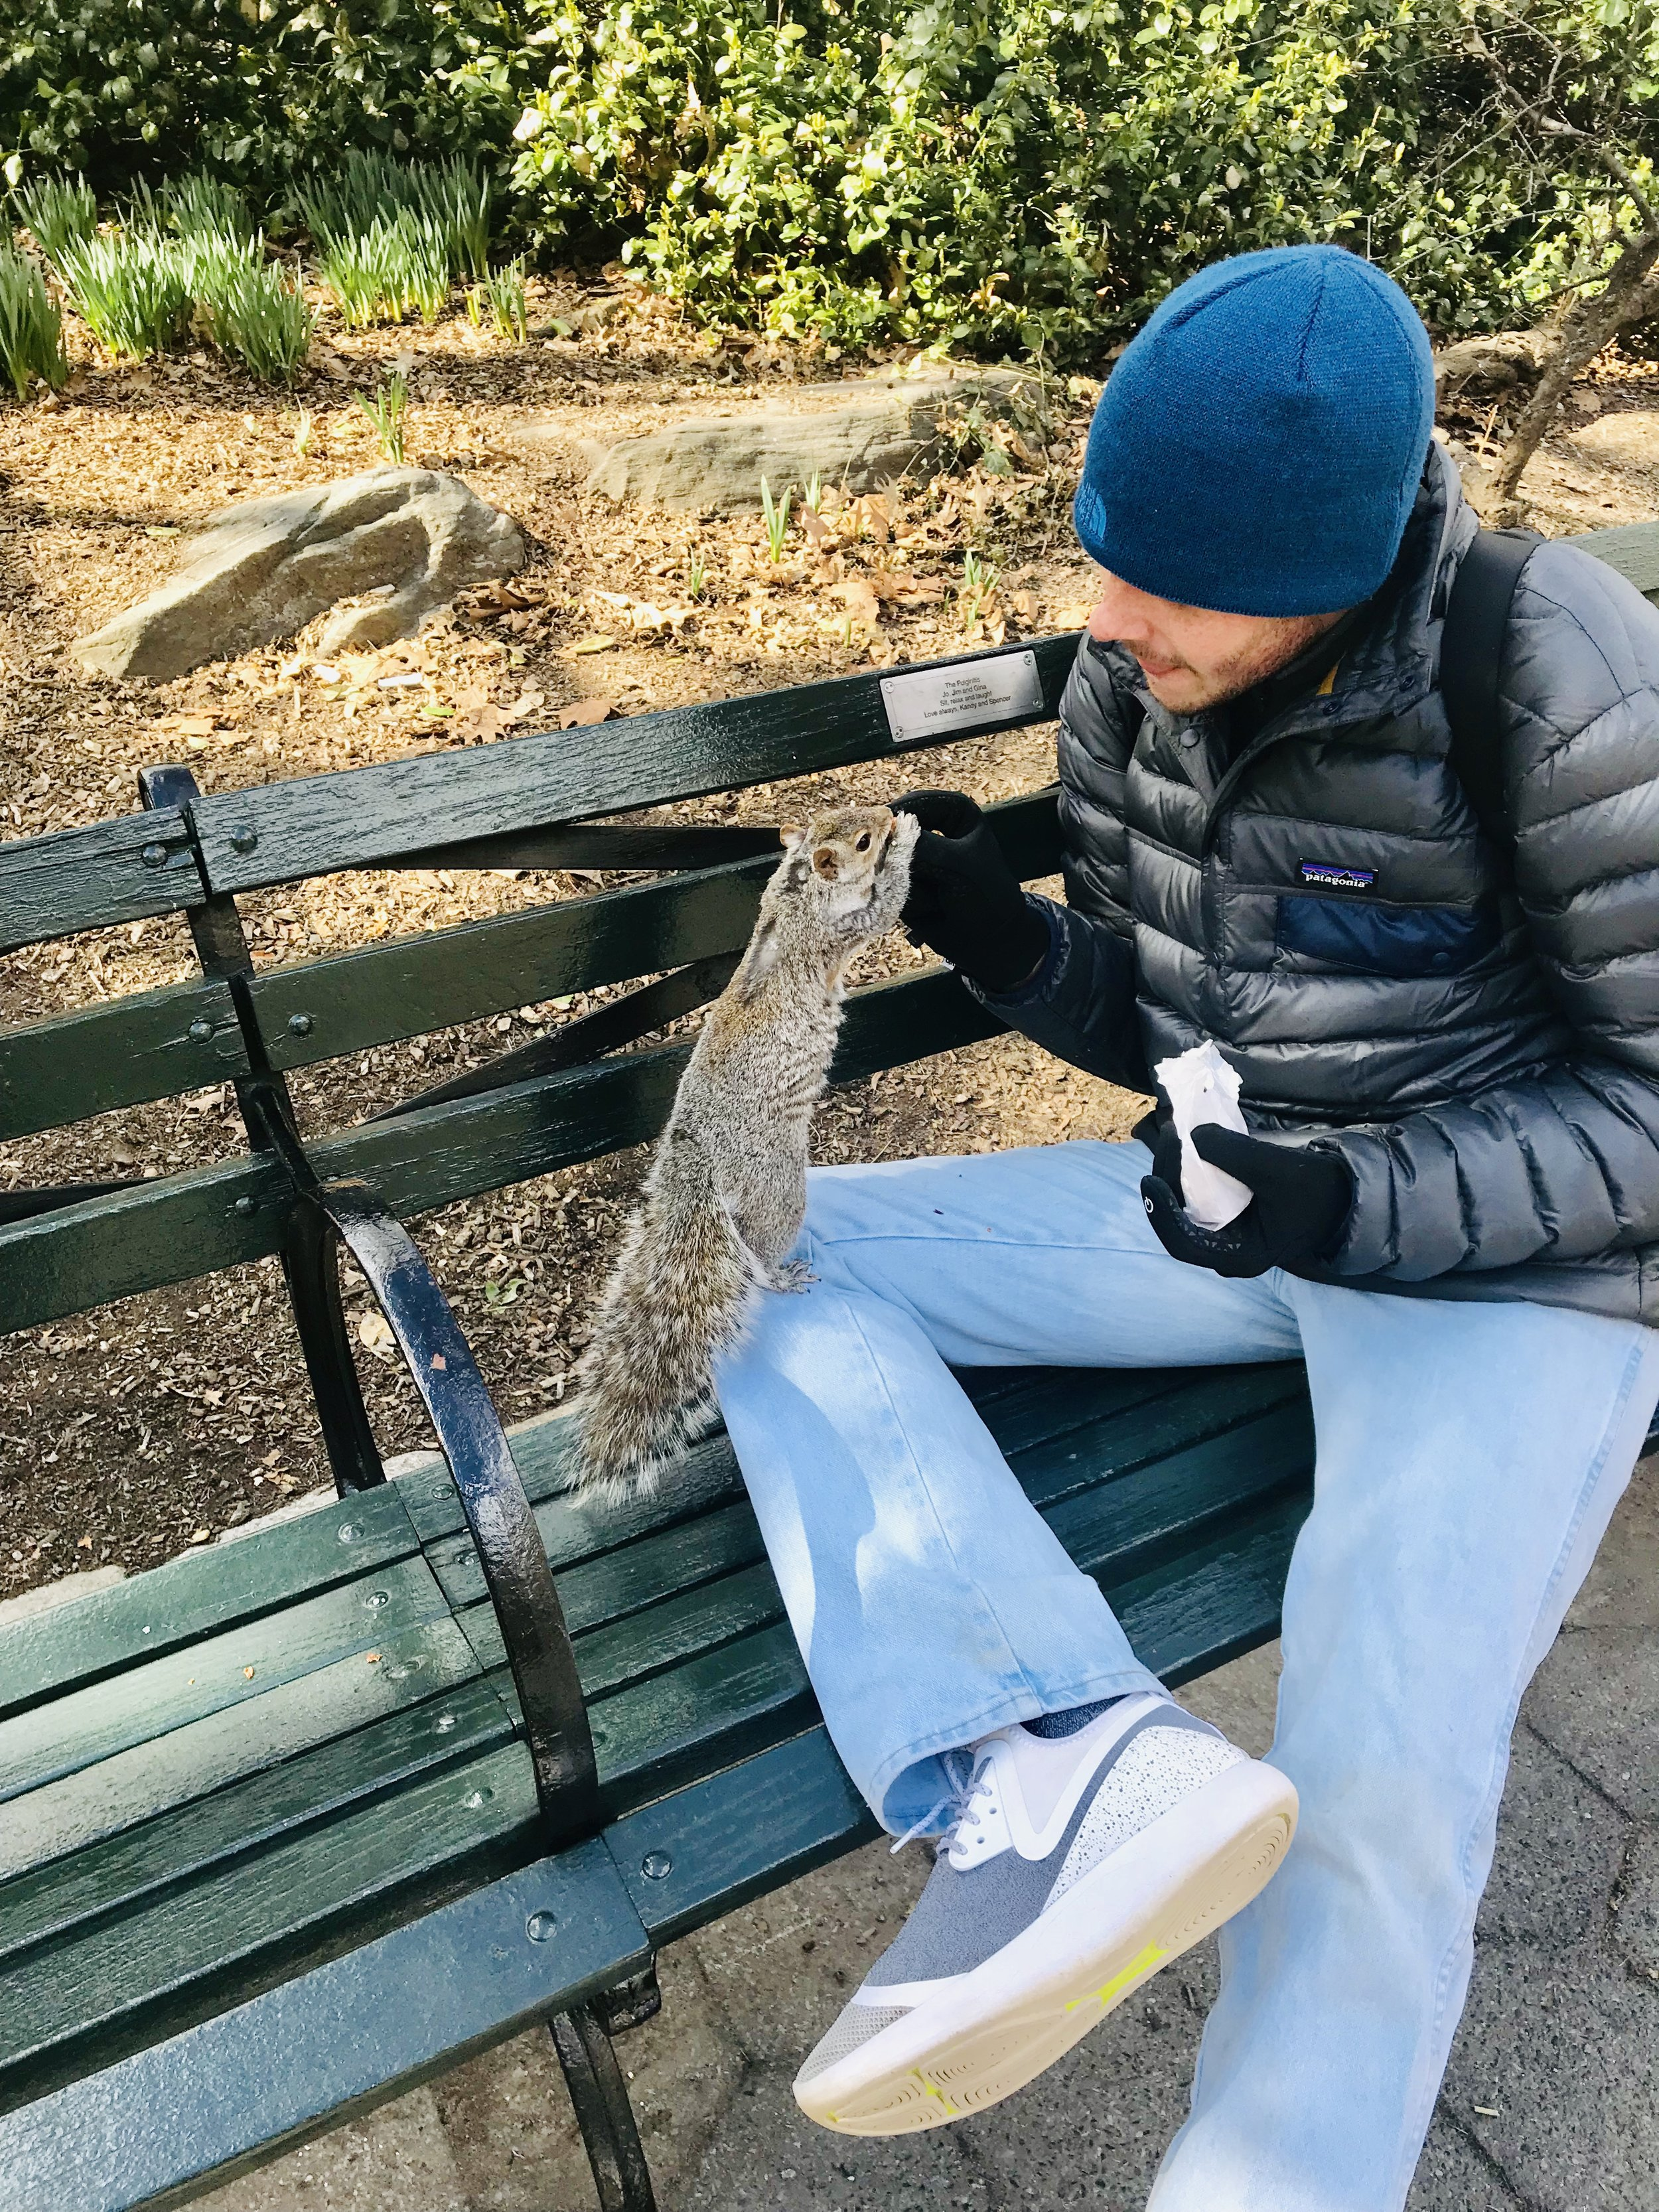 the Central Park squirrels LOVE to be fed!